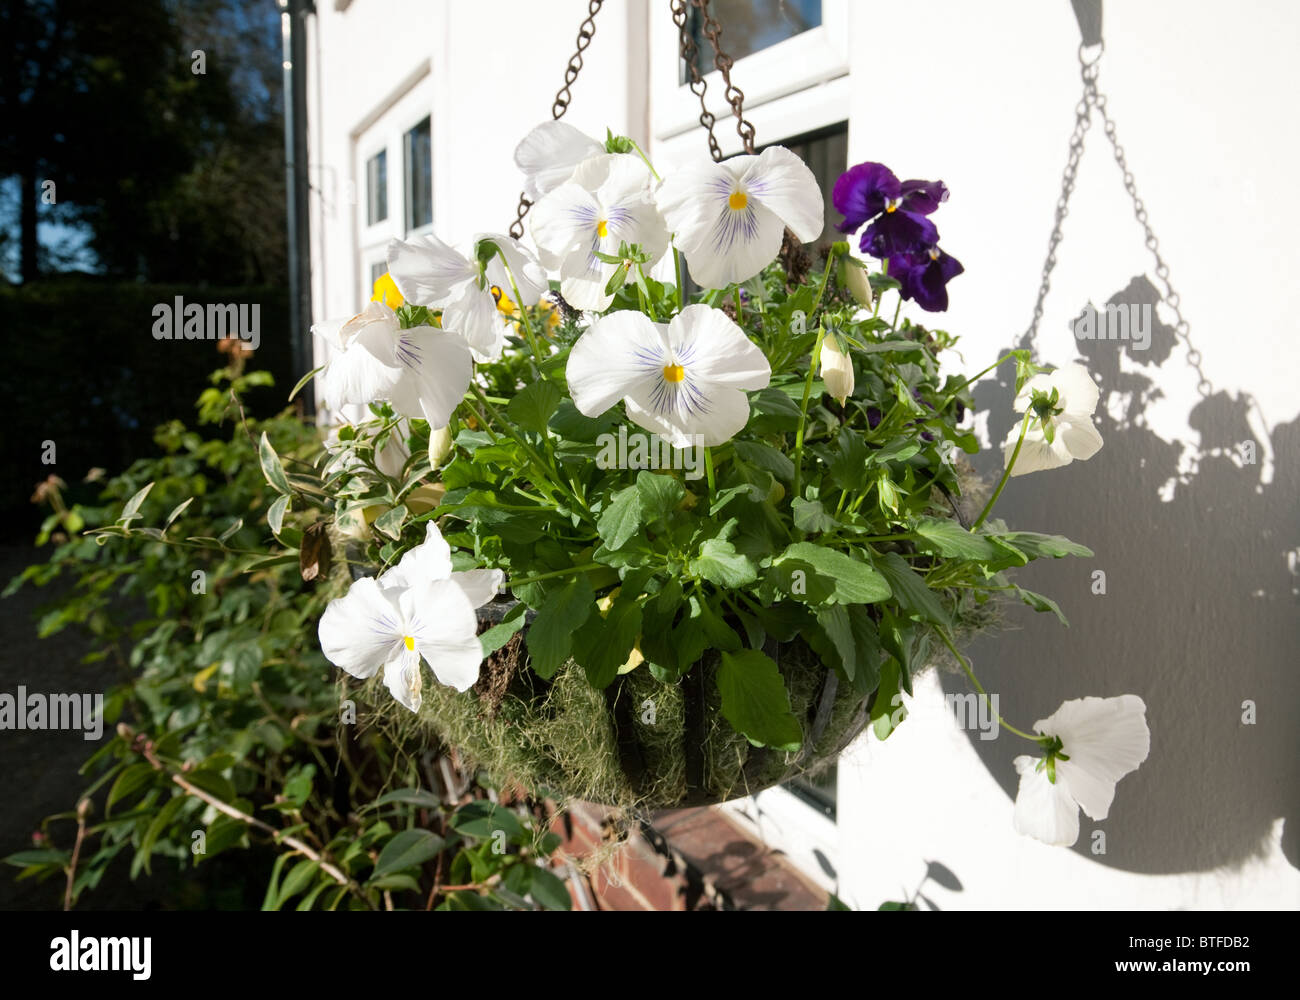 A winter hanging basket containing white and purple pansies on  a house in Suffolk, UK - Stock Image